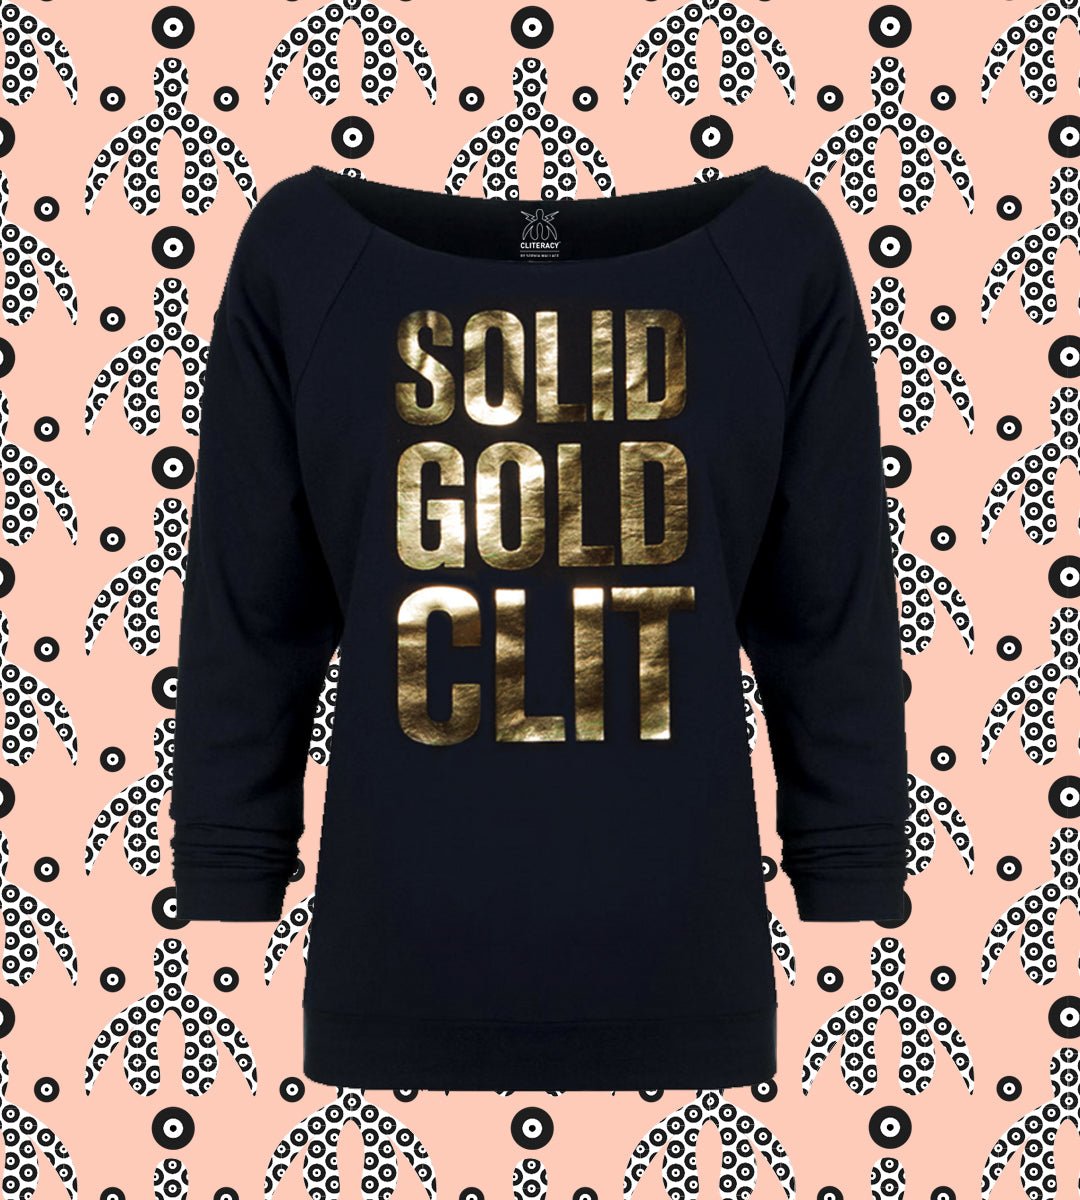 SOLID GOLD CLIT | Sweatshirt